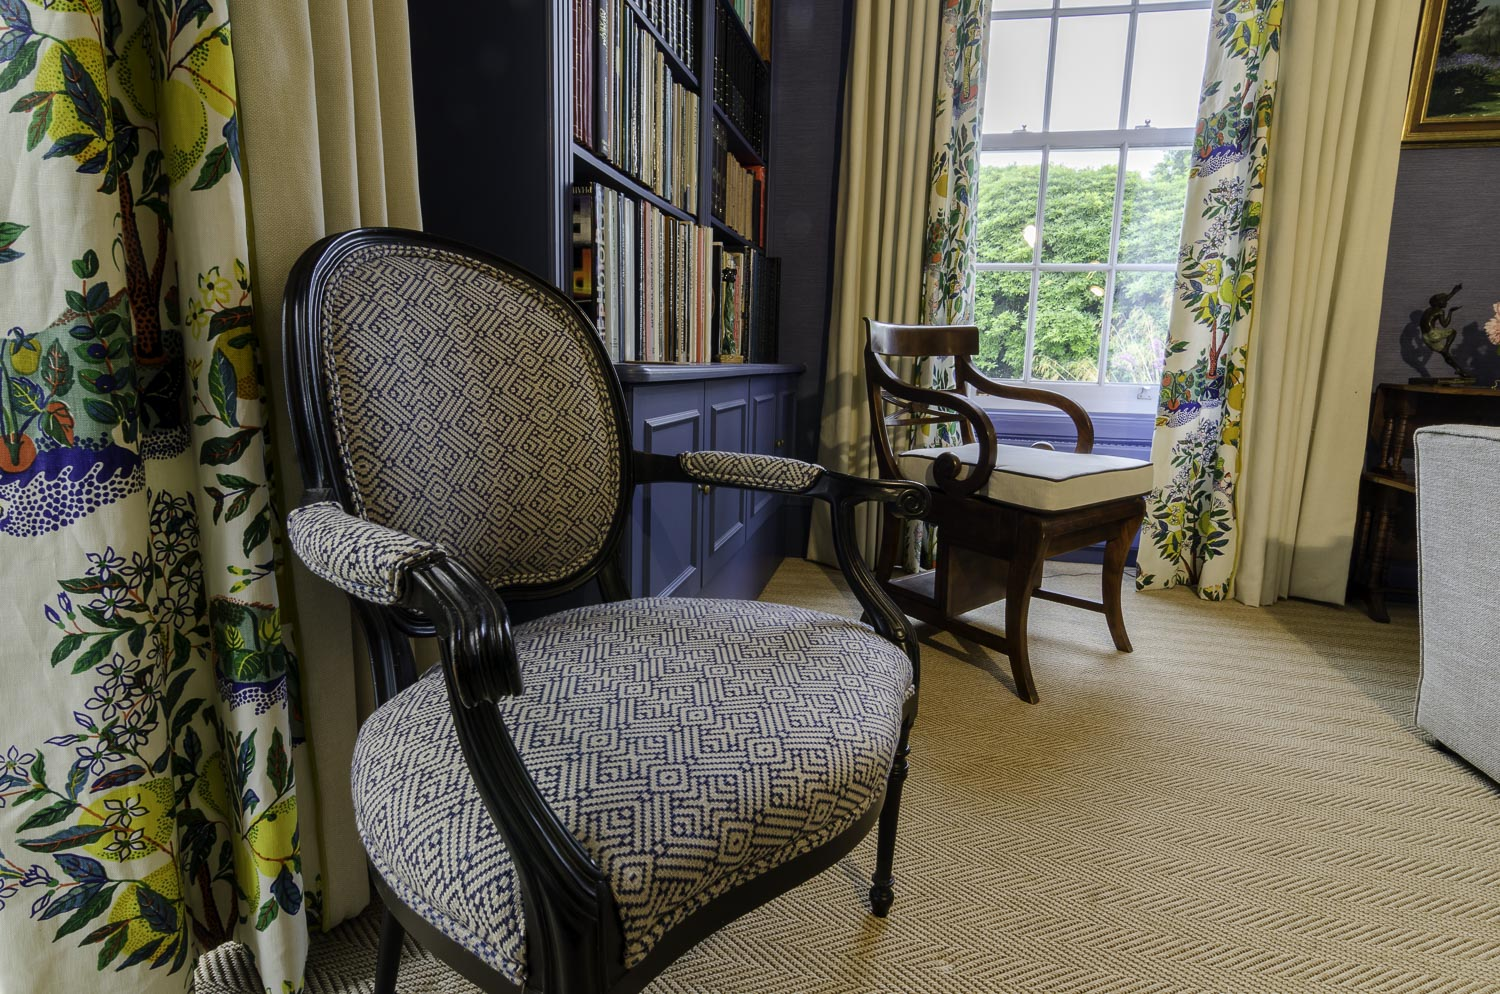 wh-drawing_room_chairs-1500pw-500kb.jpg